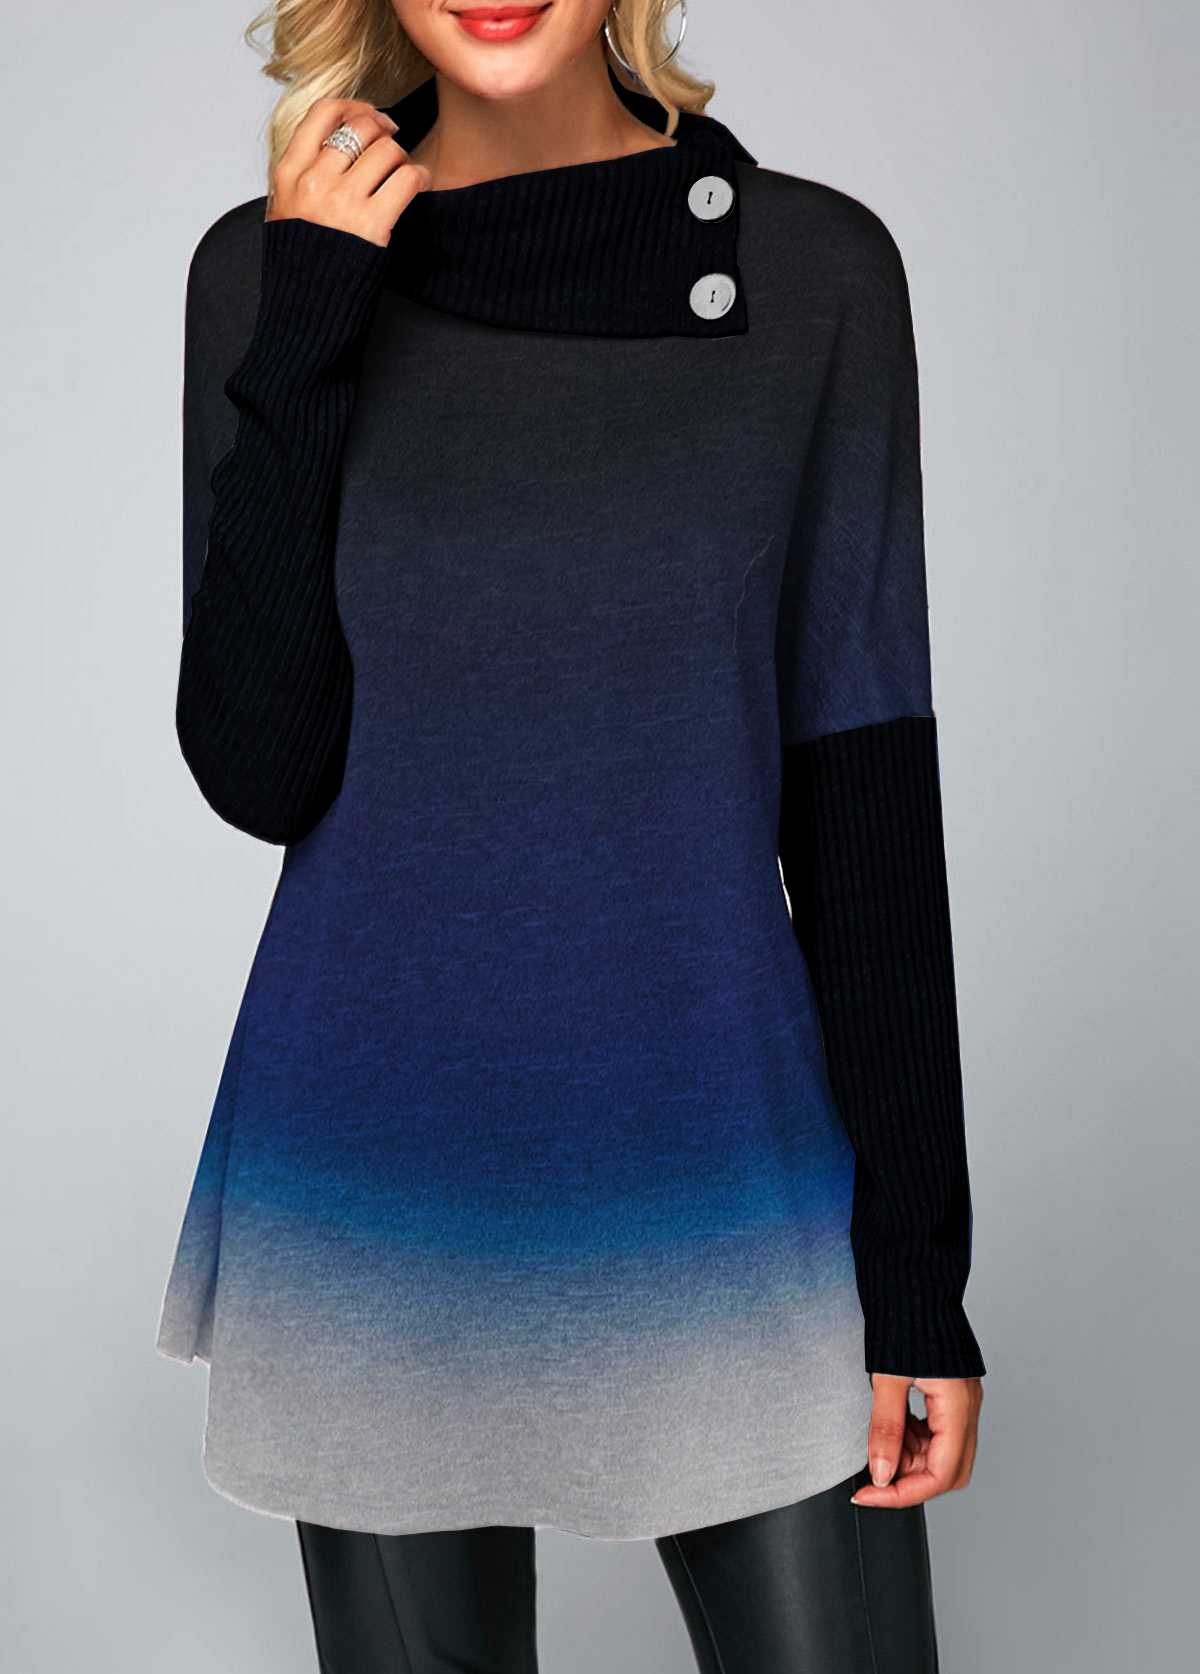 Long Sleeve Button Embellished Ombre T Shirt